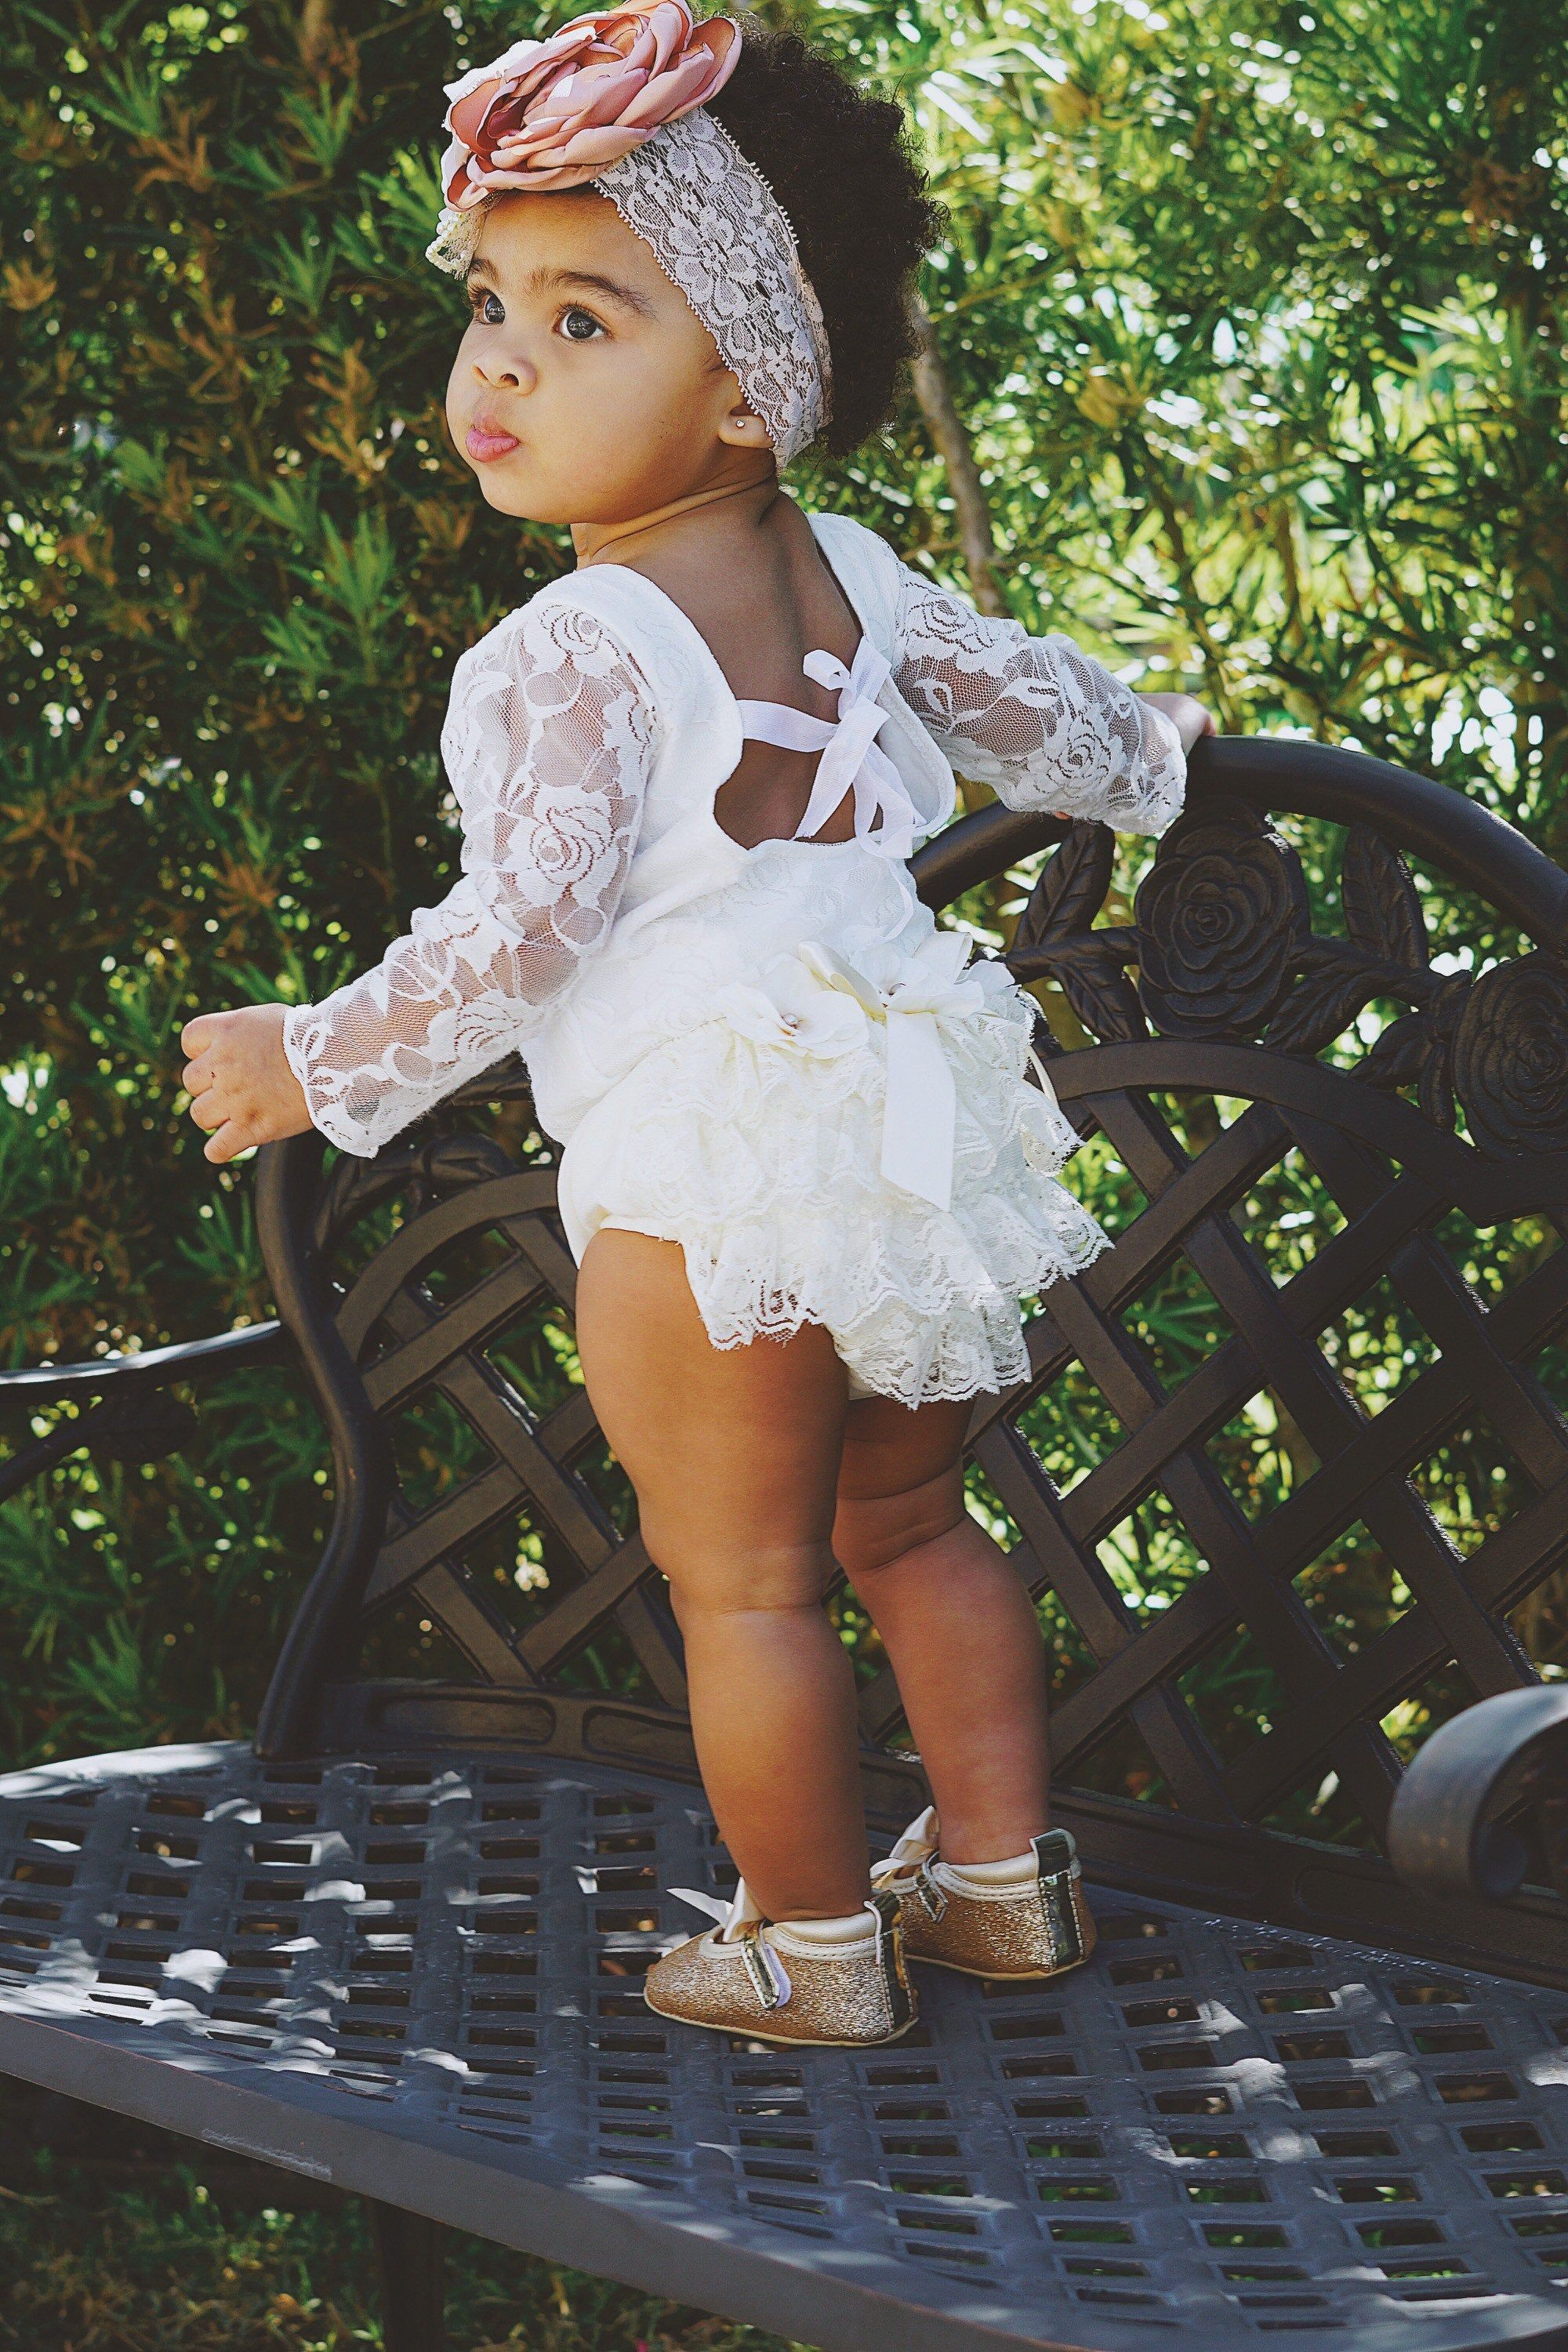 New White Lace Bodysuit Baby Girl Lovely Boho Chic Lace Etsy 1st Birthday Outfit Girl White Lace Bodysuit First Birthday Outfit Girl